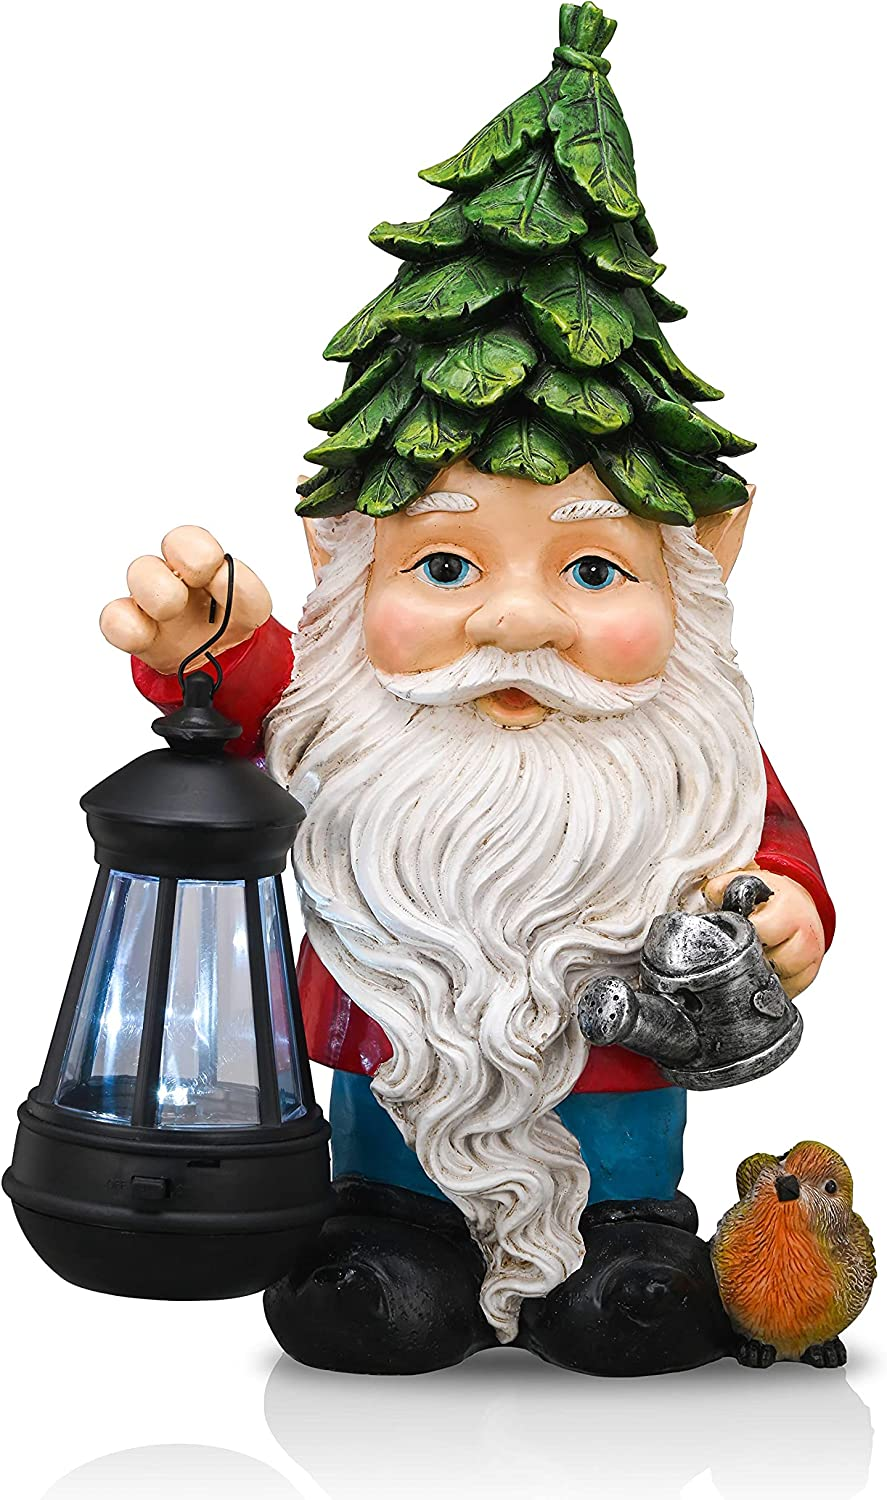 TERESA'S COLLECTIONS Large Garden Gnome Statue with Solar Powered Lights, Resin Outdoor Gnome Figurine Lawn Ornaments Holding Lantern for Patio Yard Decoration ,12 Inch